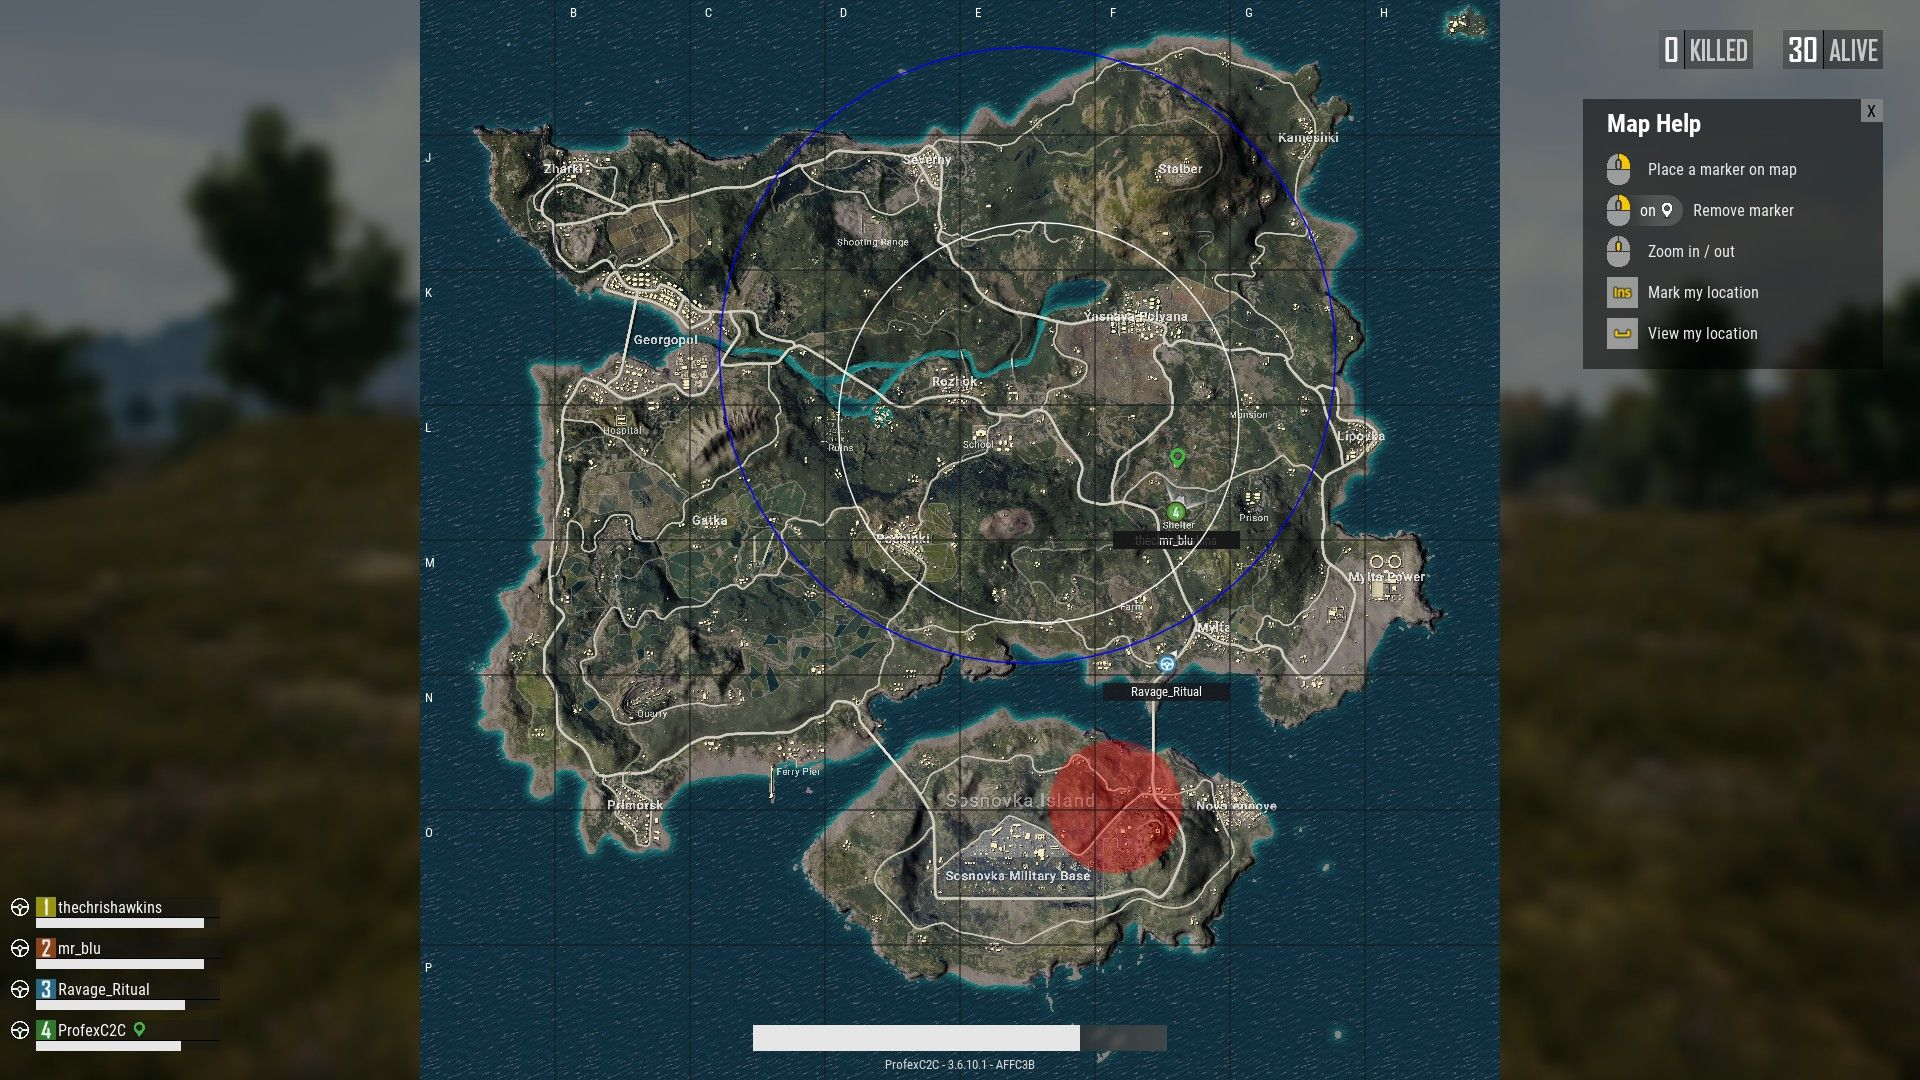 New Pubg Map Is Coming By July: PUBG Is Getting A Third Map In First Half Of 2018